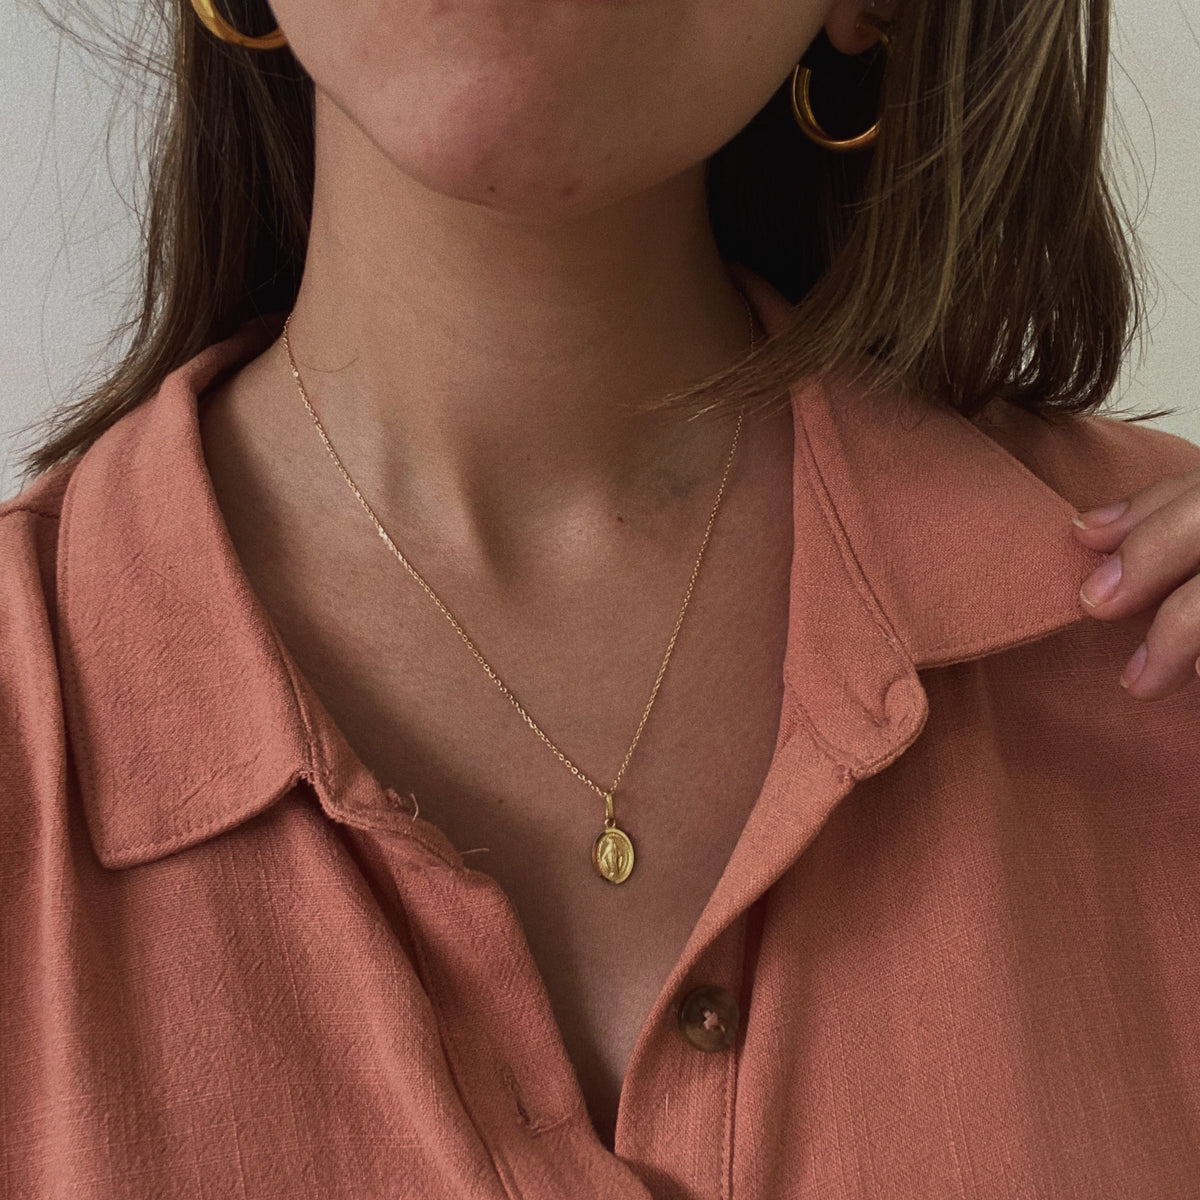 Milagrosa Necklace - Solid Gold